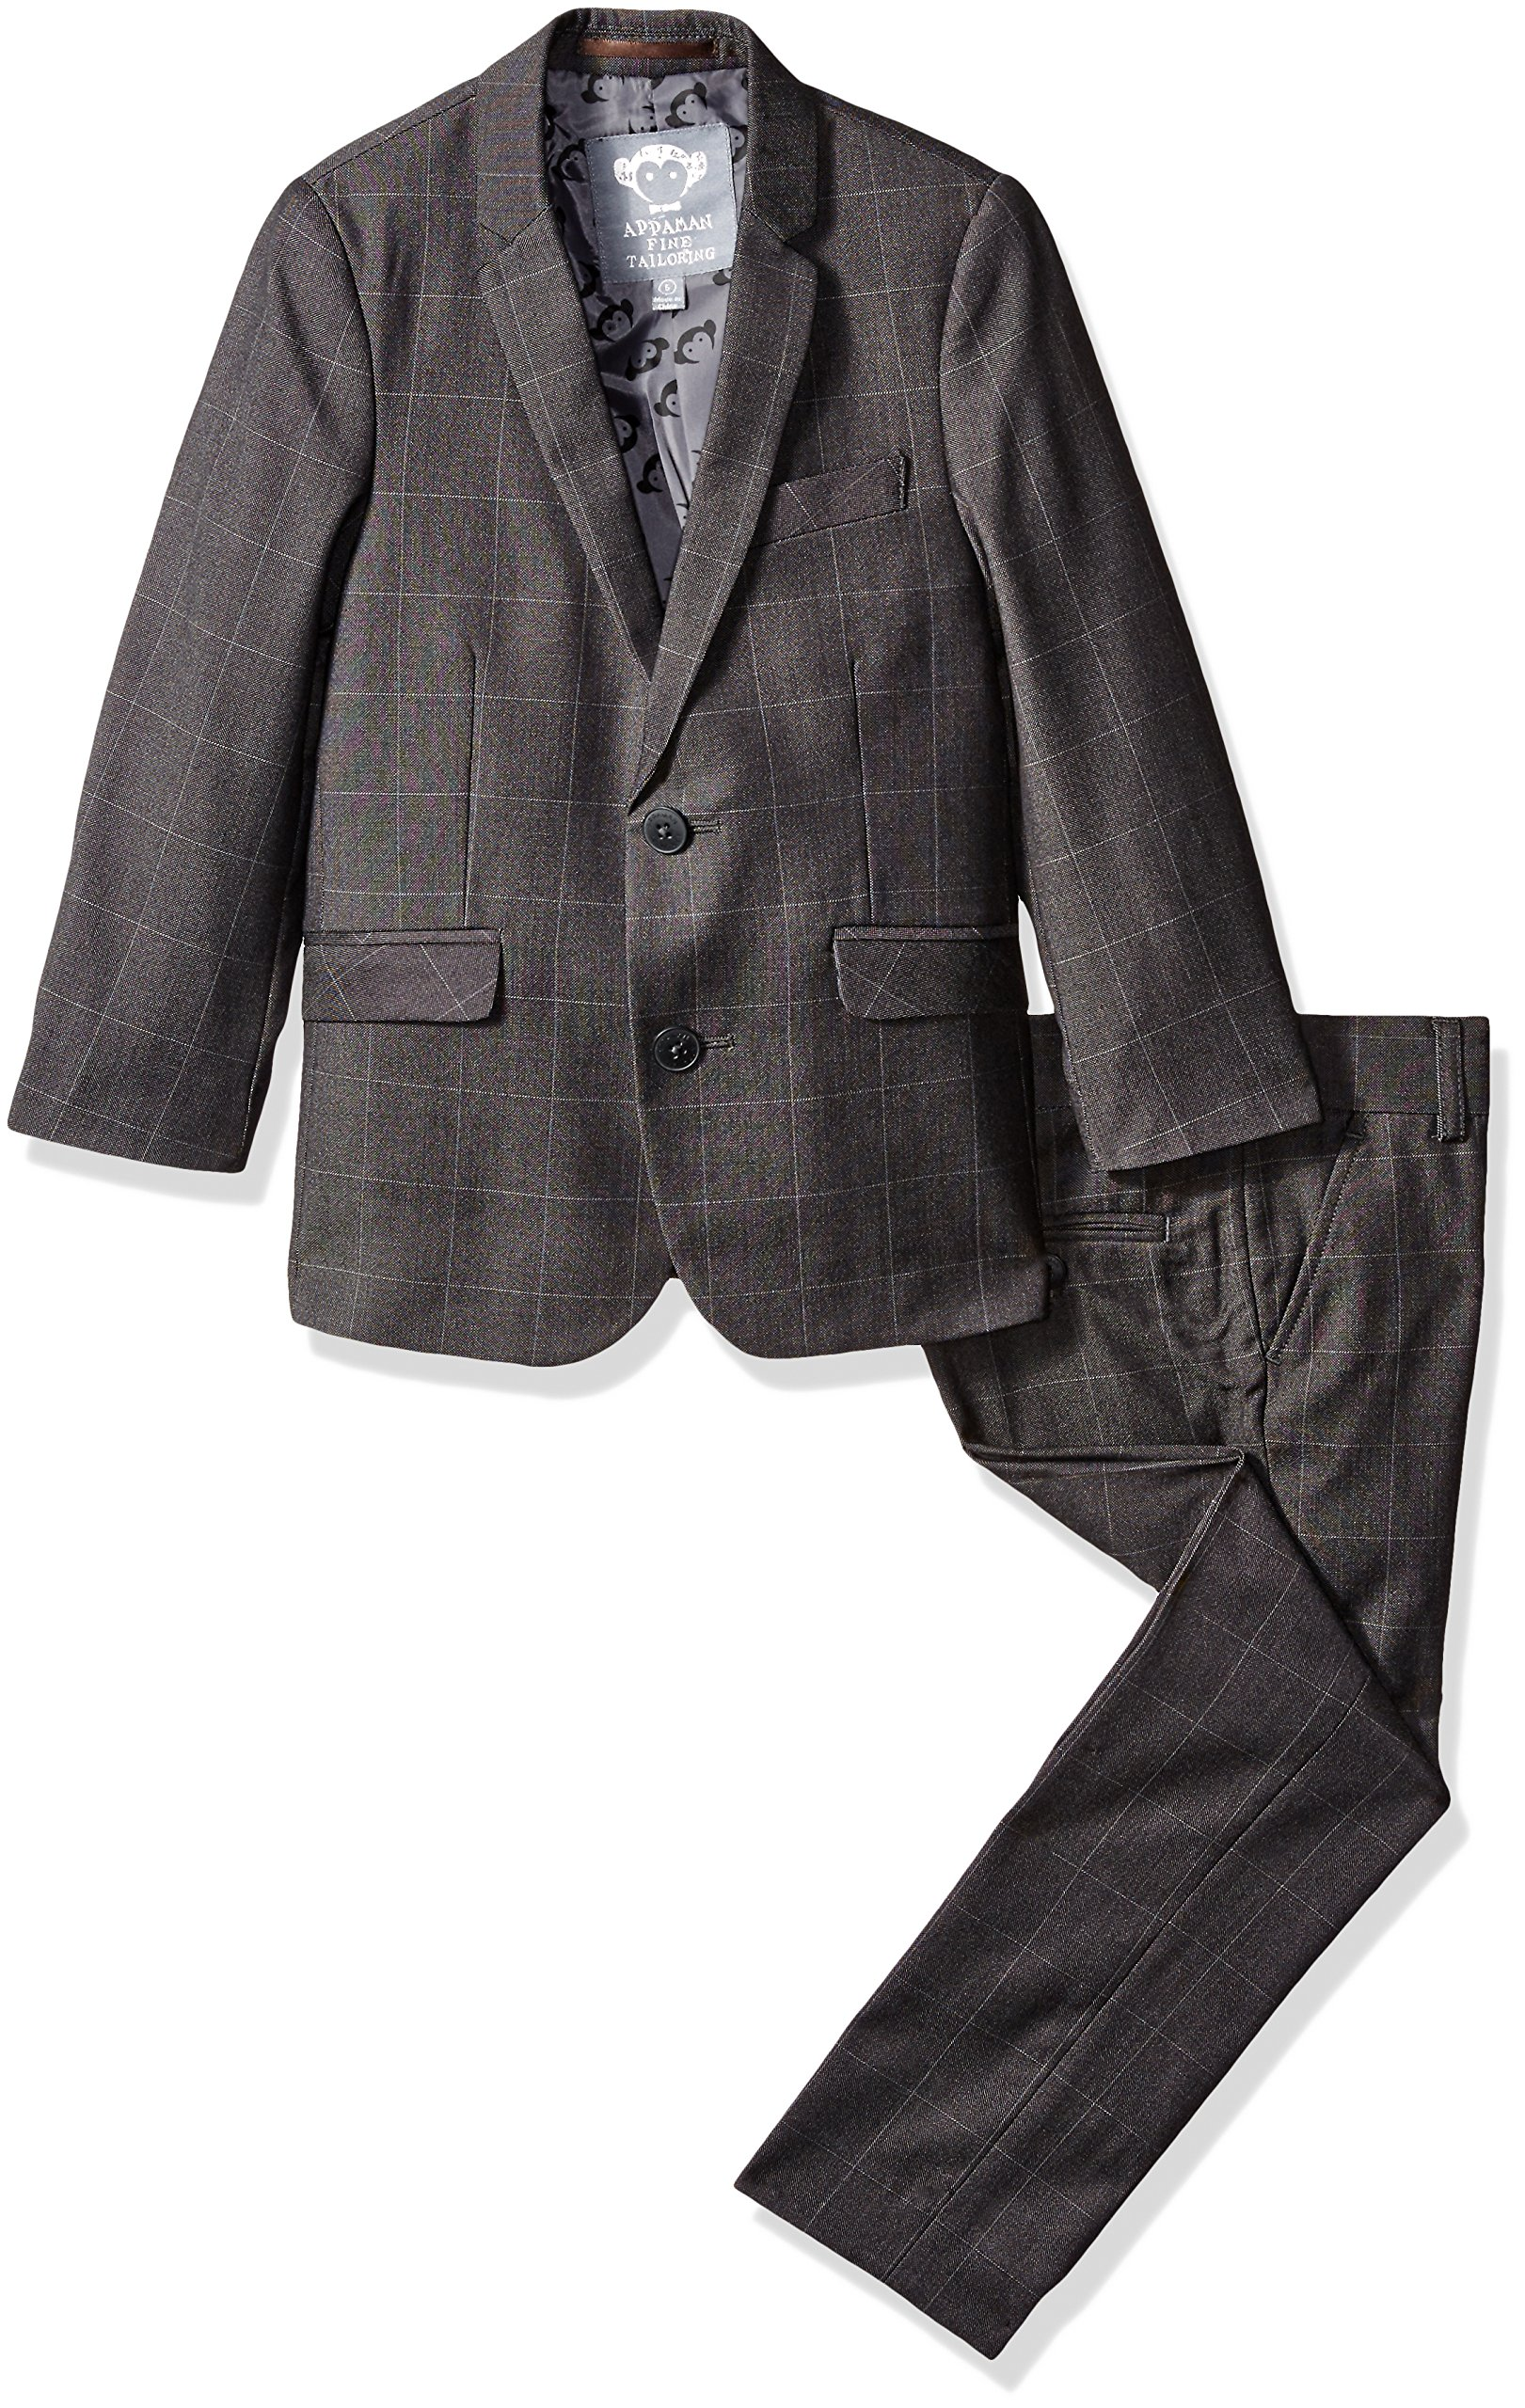 Appaman Boys' Big Boys' MOD Suit, Charcoal Windowpane, 12 by Appaman